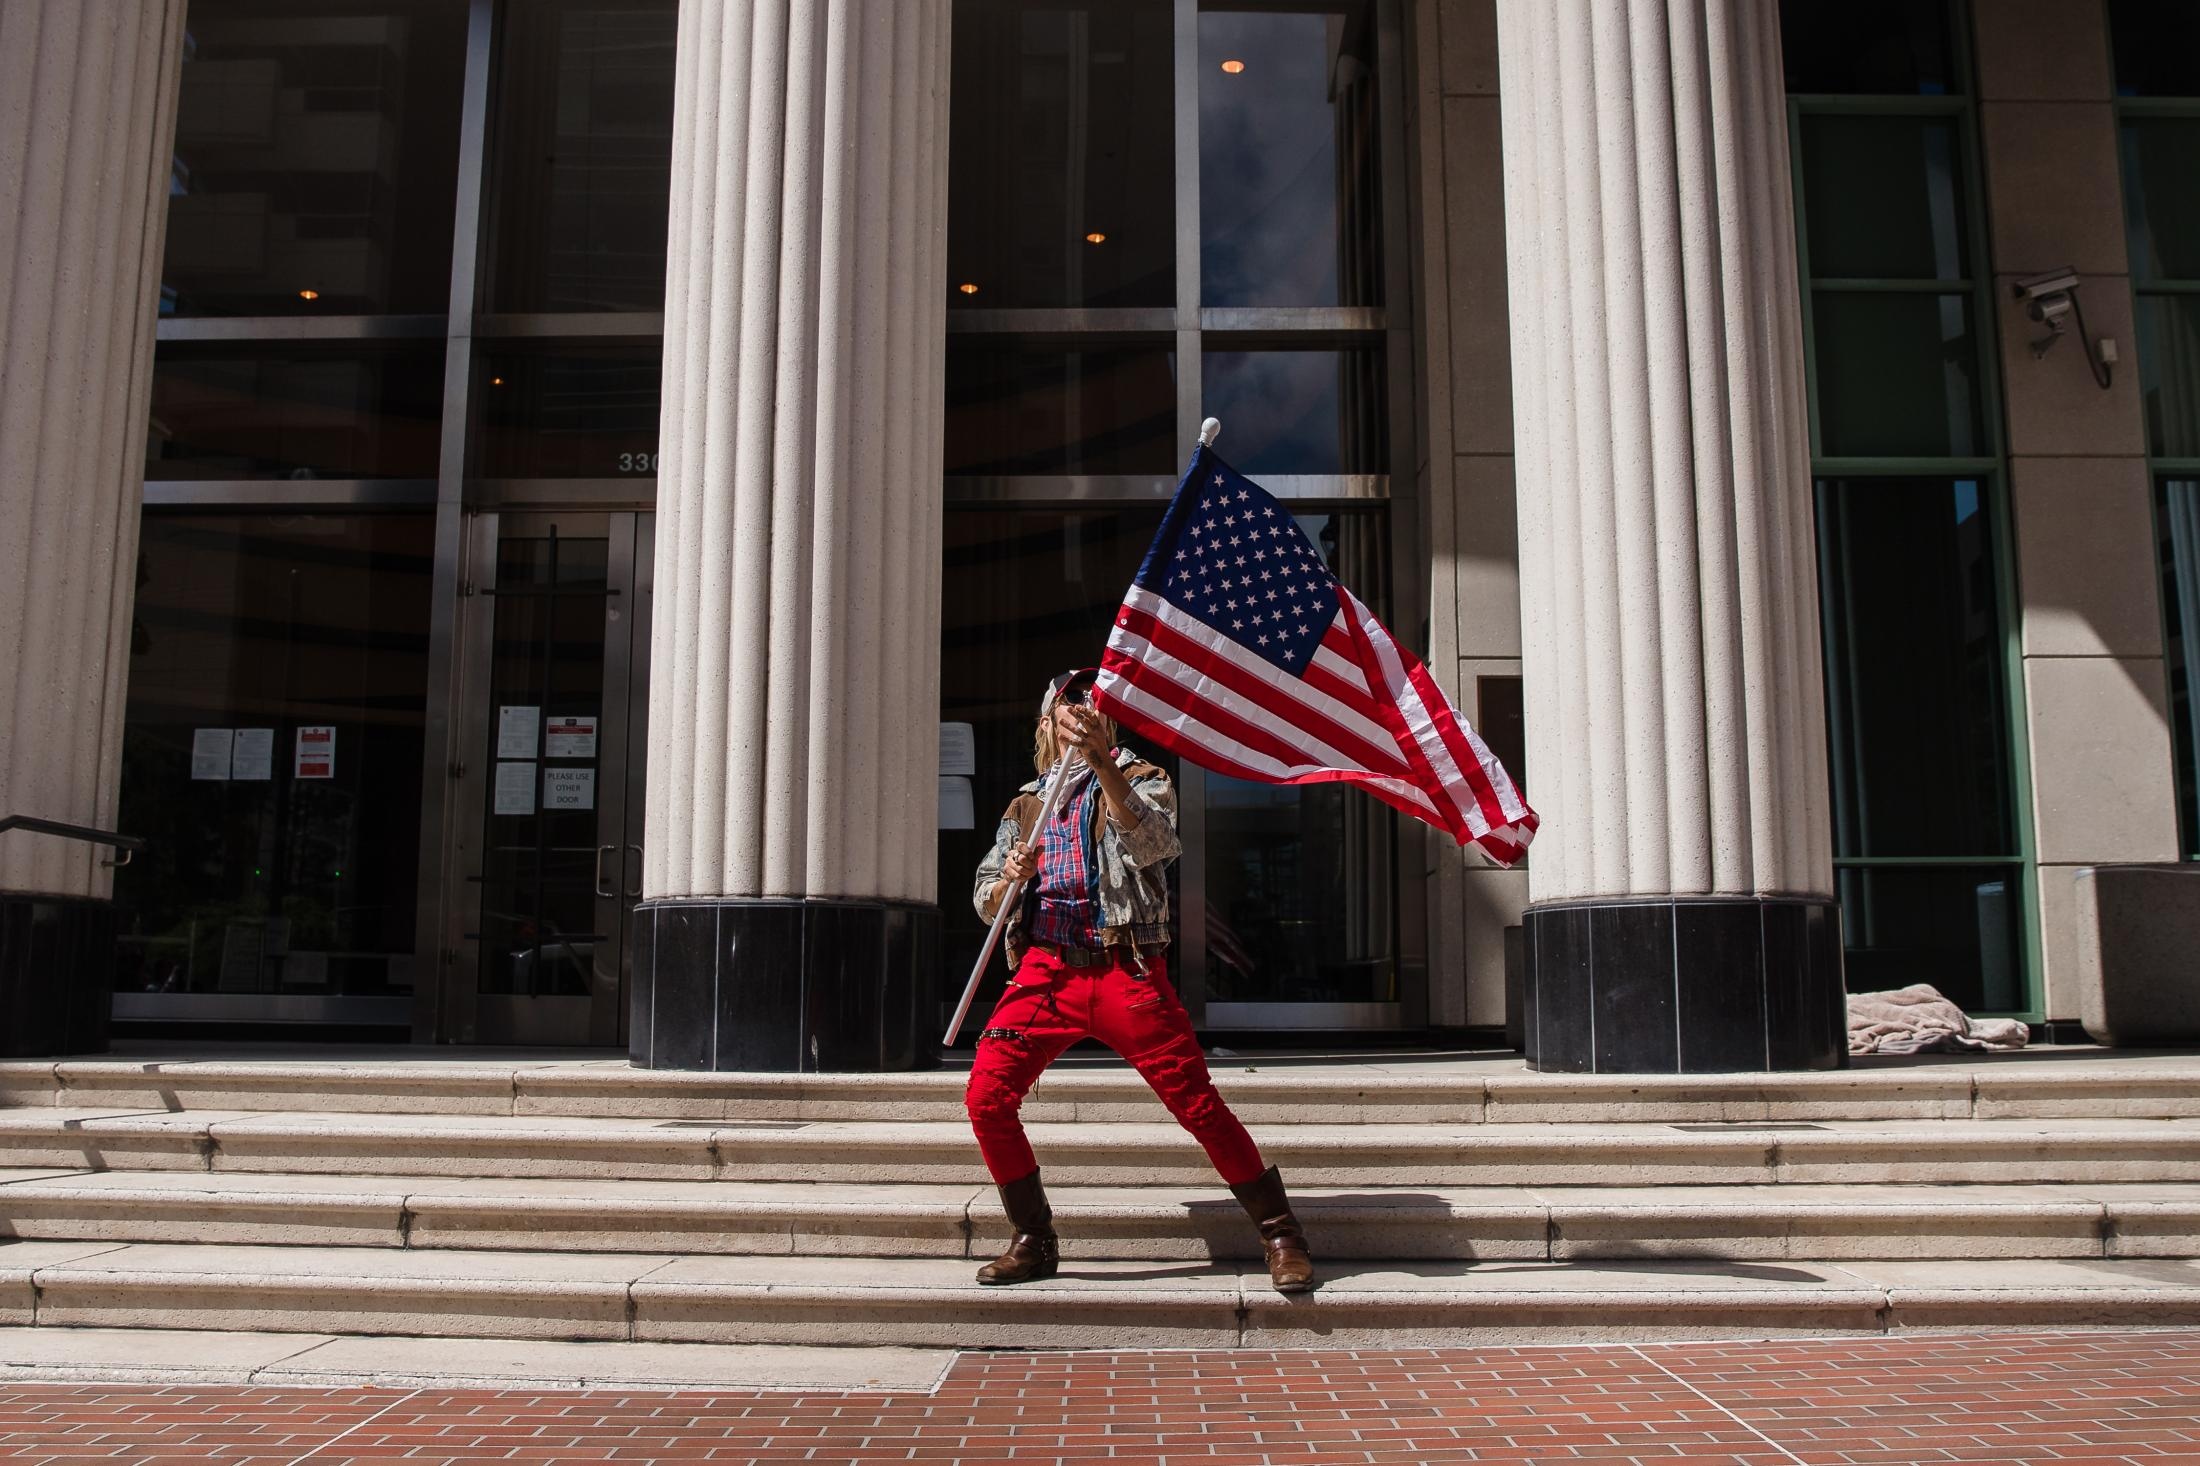 A man waves the American flag in front of the Hall of Justice Courthouse while protesters rally in downtown San Diego against California's stay at home order to prevent the spread of Coronavirus on April 18, 2020. With growing frustration there have been other planned demonstrations in several cities across the United States.